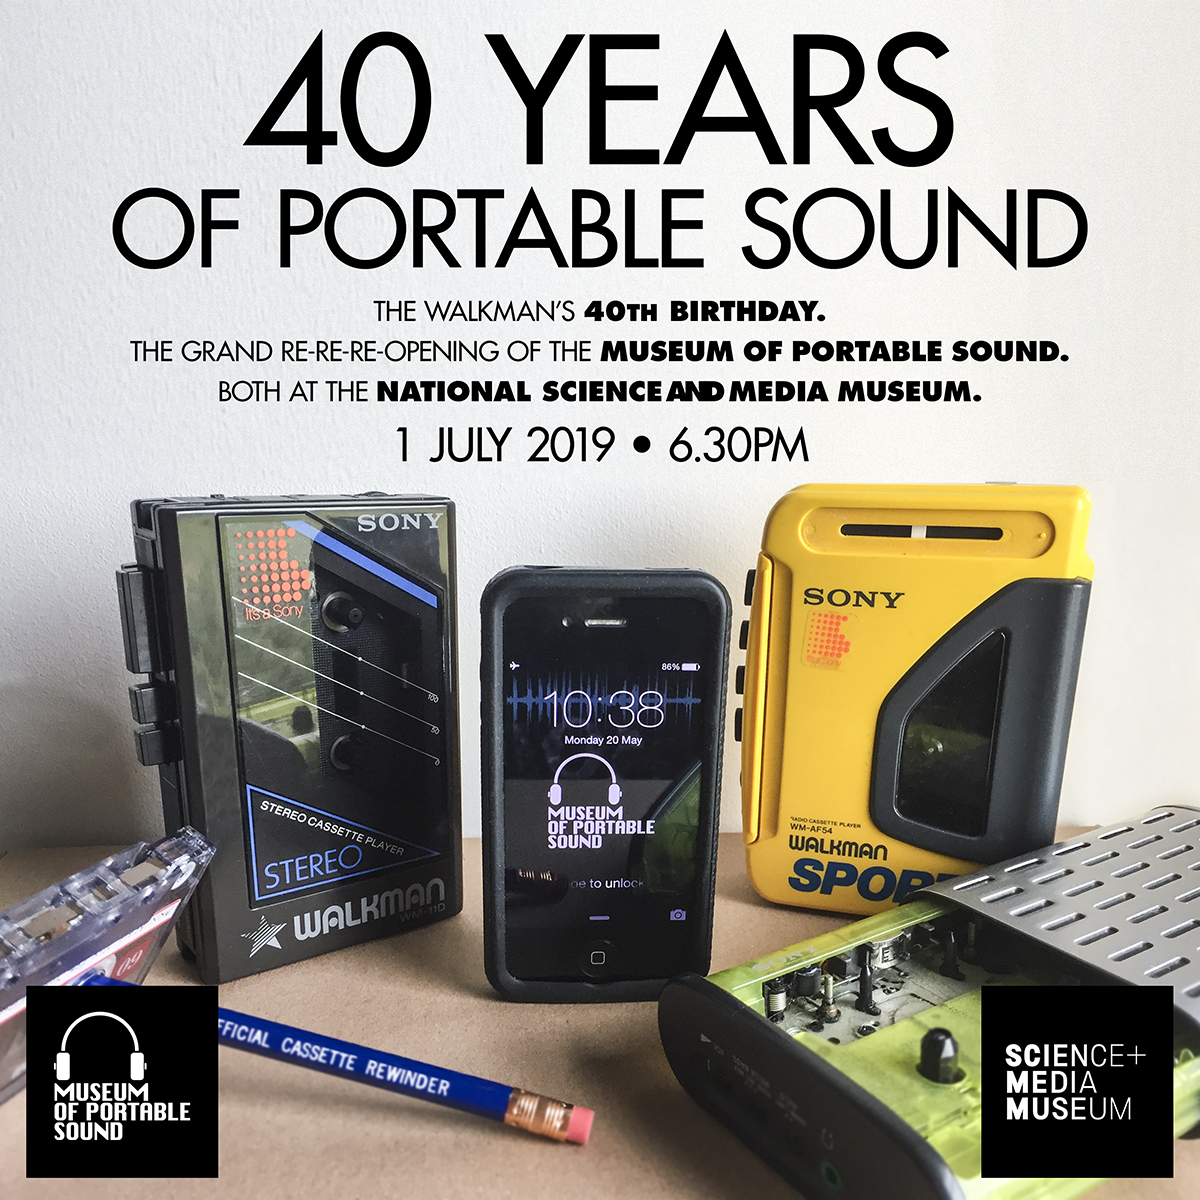 40 Years of Portable Sound